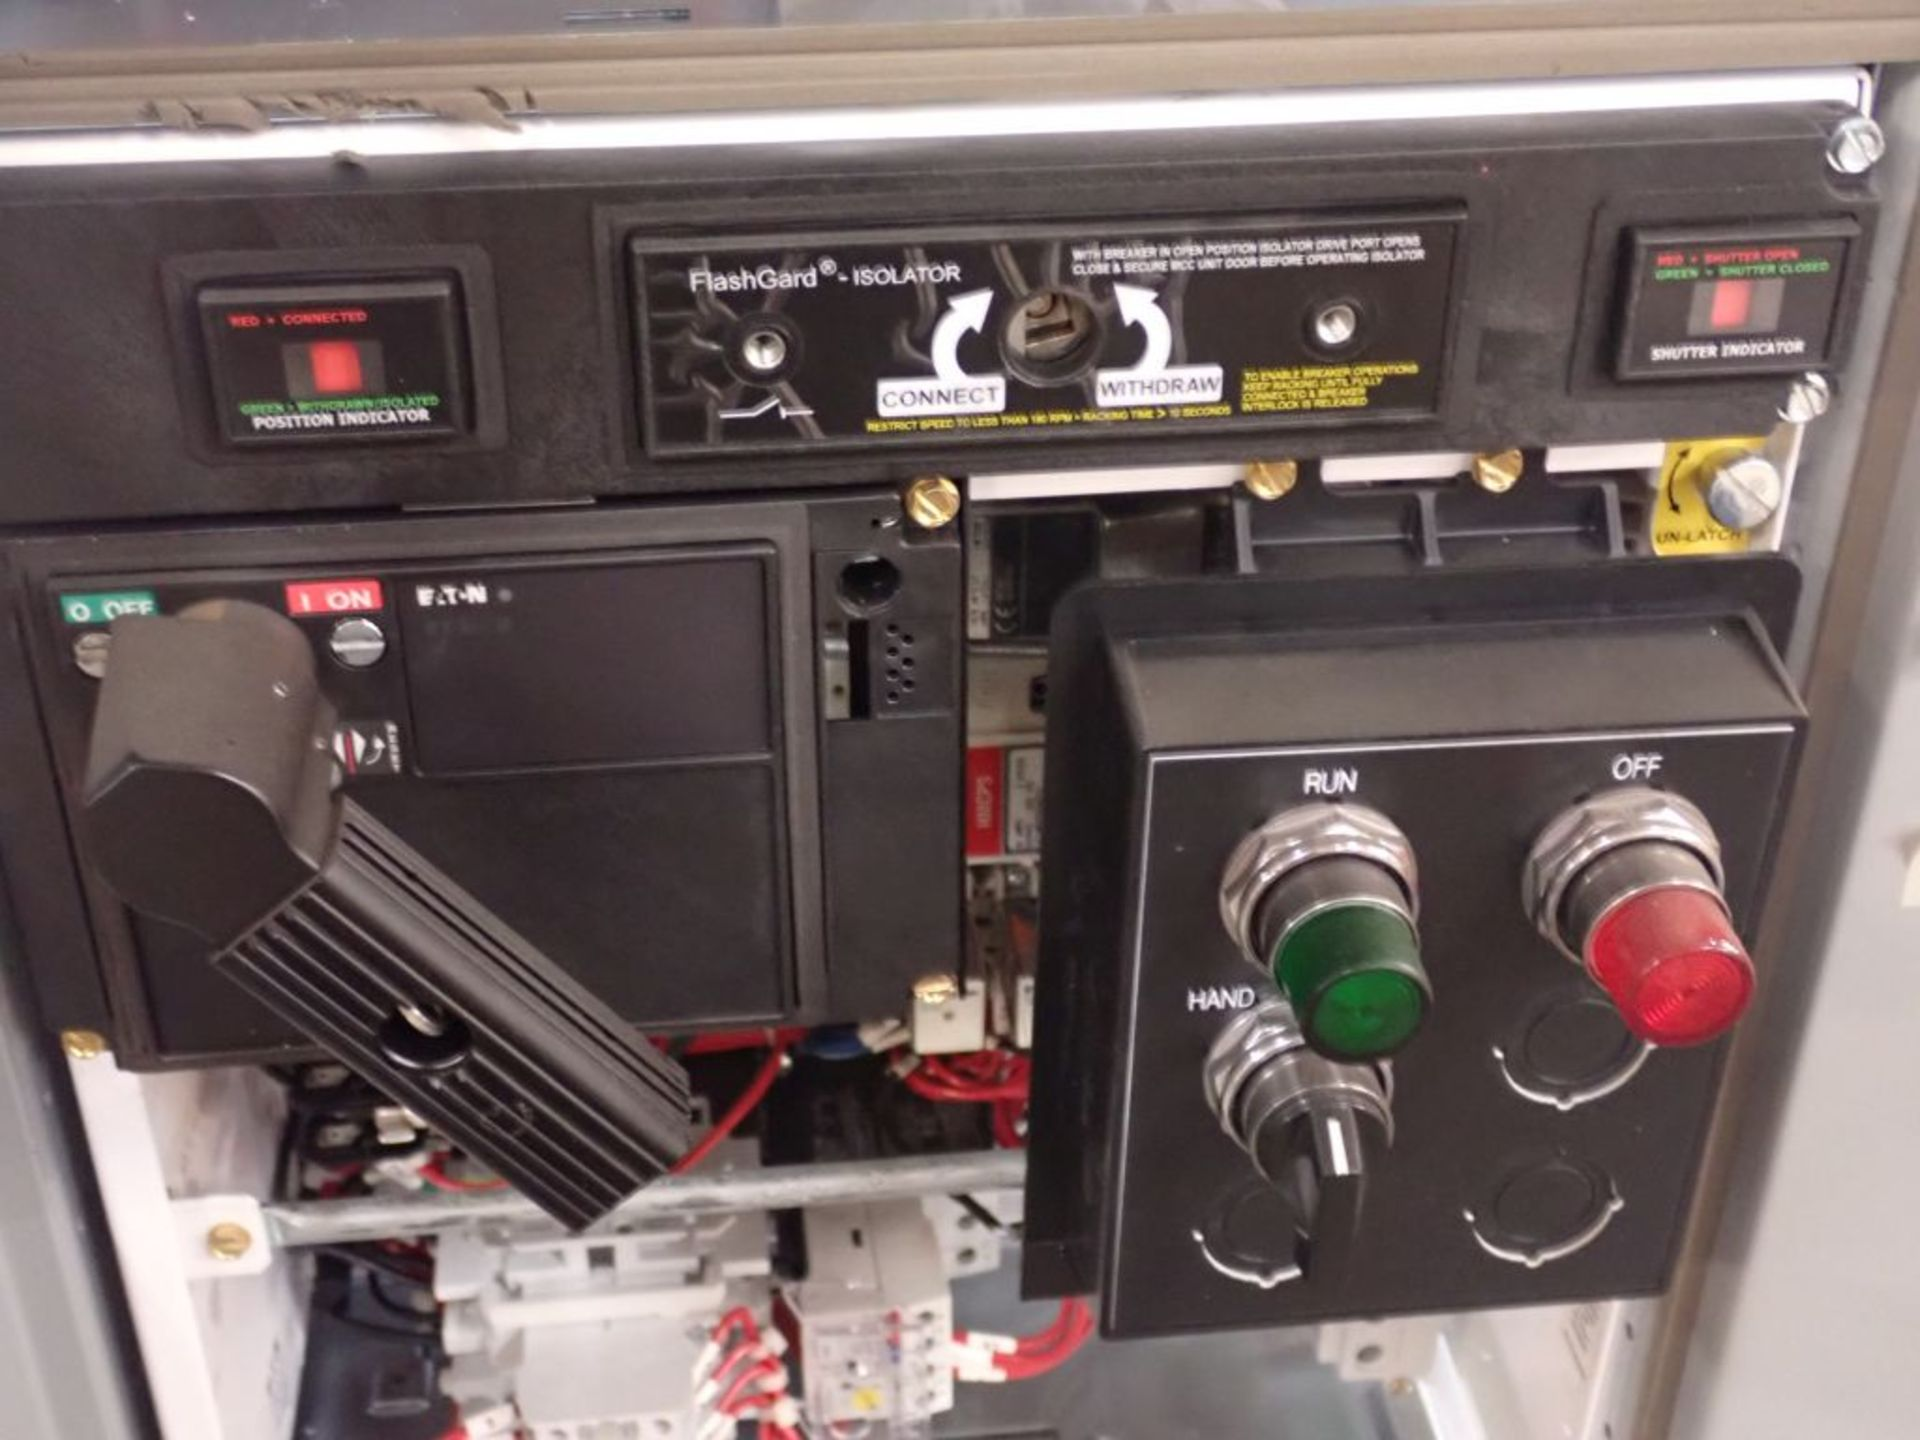 Eaton Freedom Flashgard Motor Control Center | SCR0753278, 480V; (1) INCB-250A, with 400A - Image 62 of 69